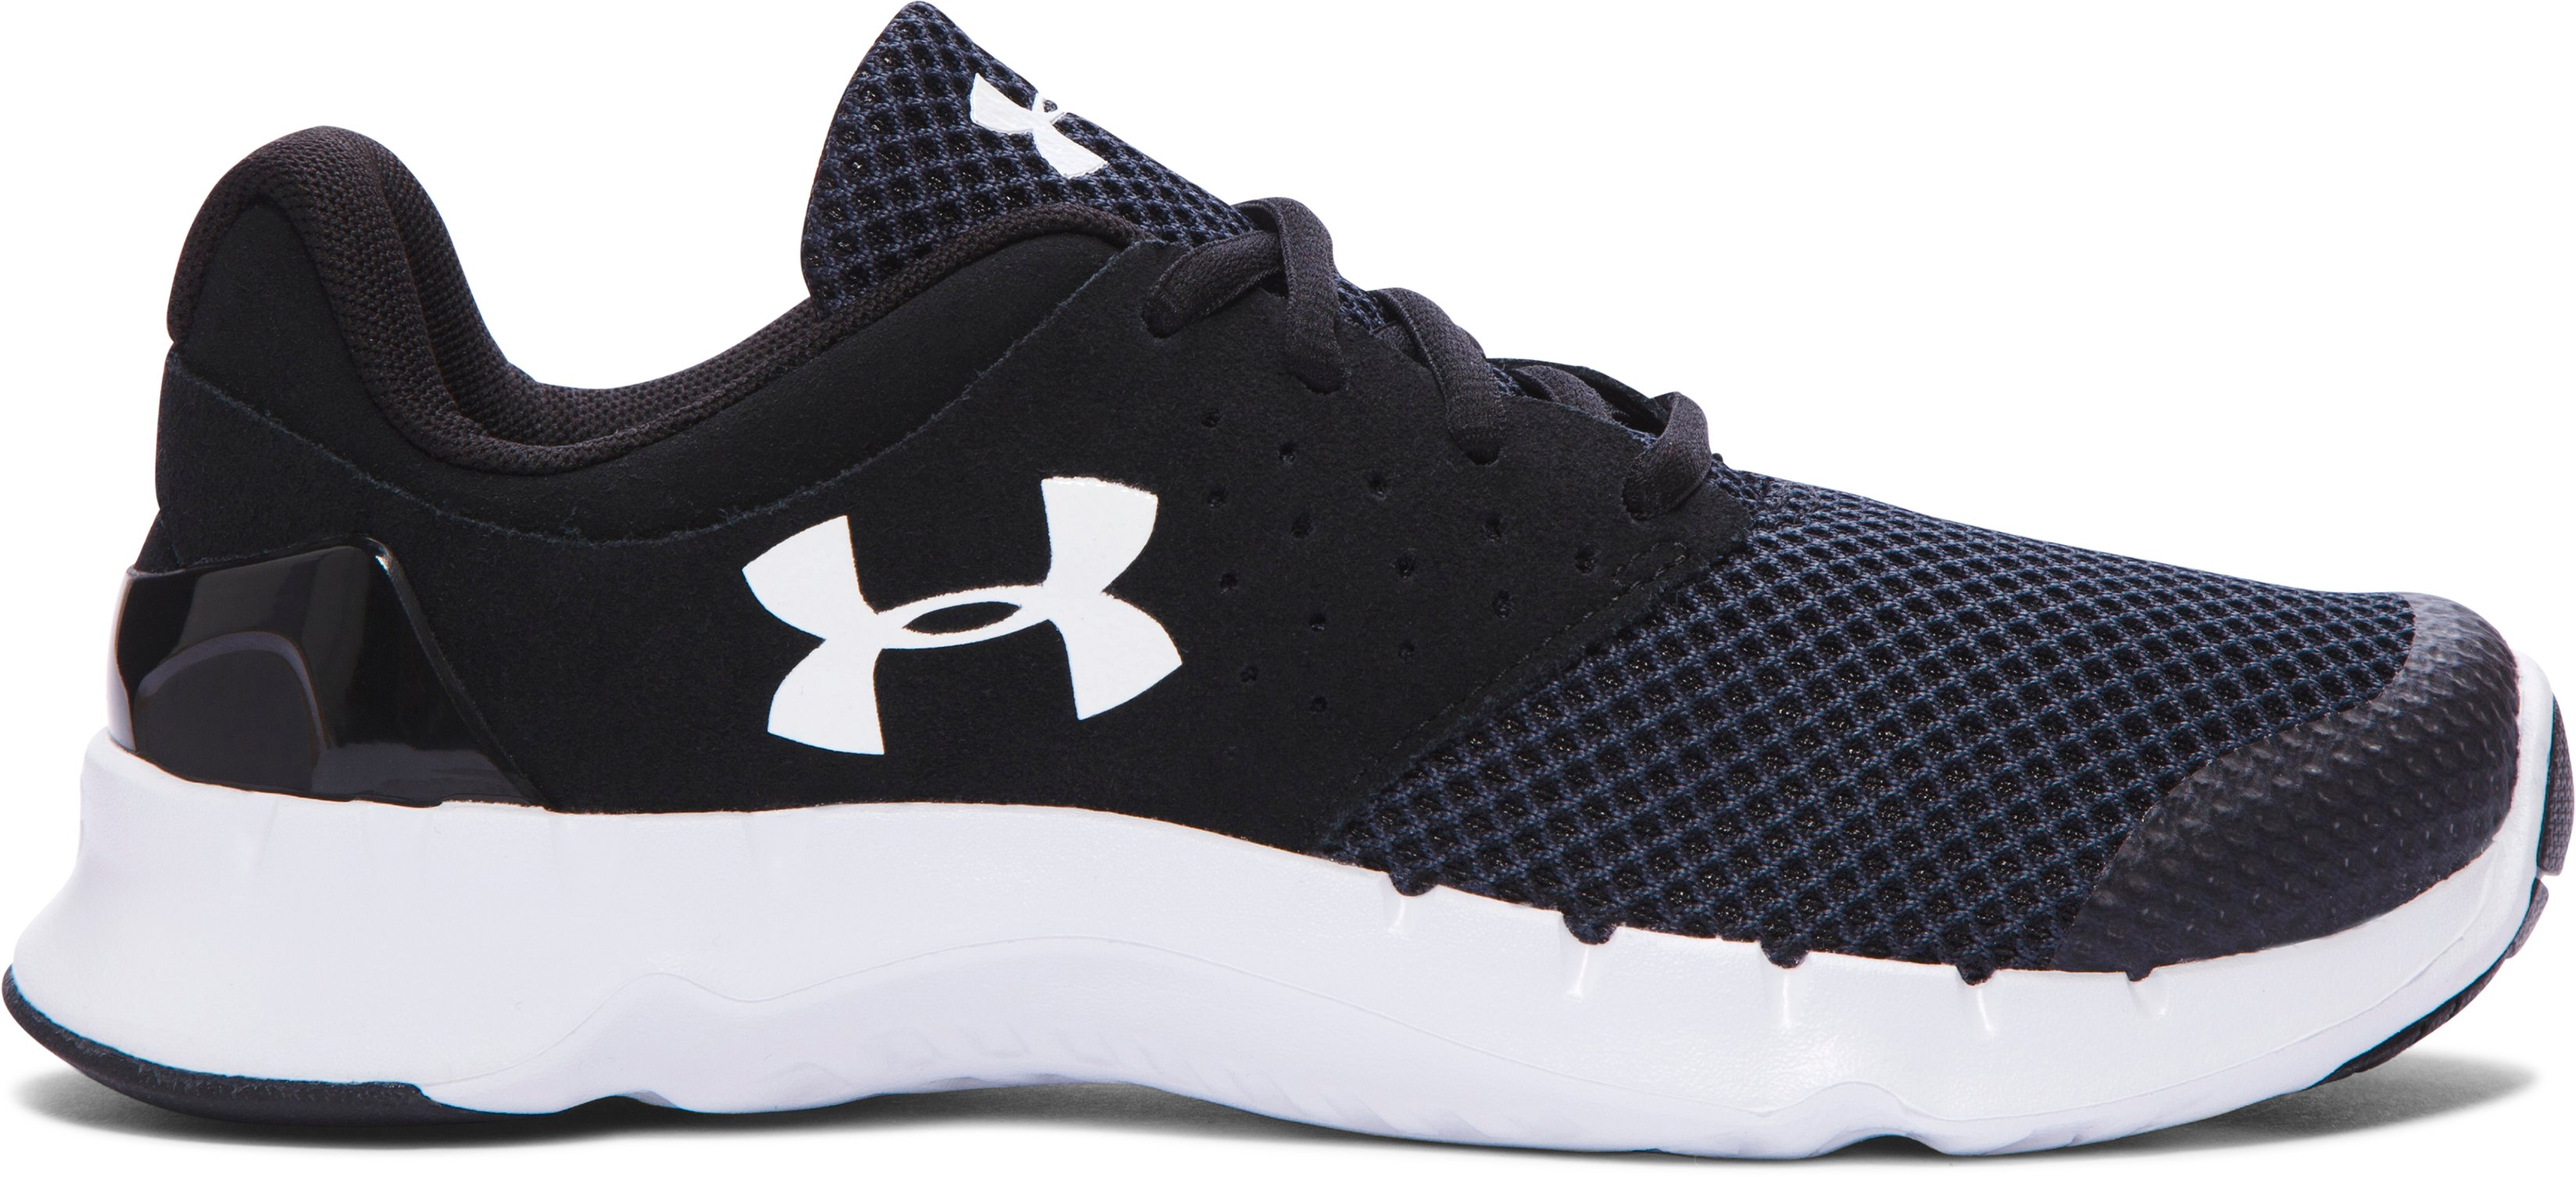 Boys' Grade School UA Flow TCK Running Shoes, Black